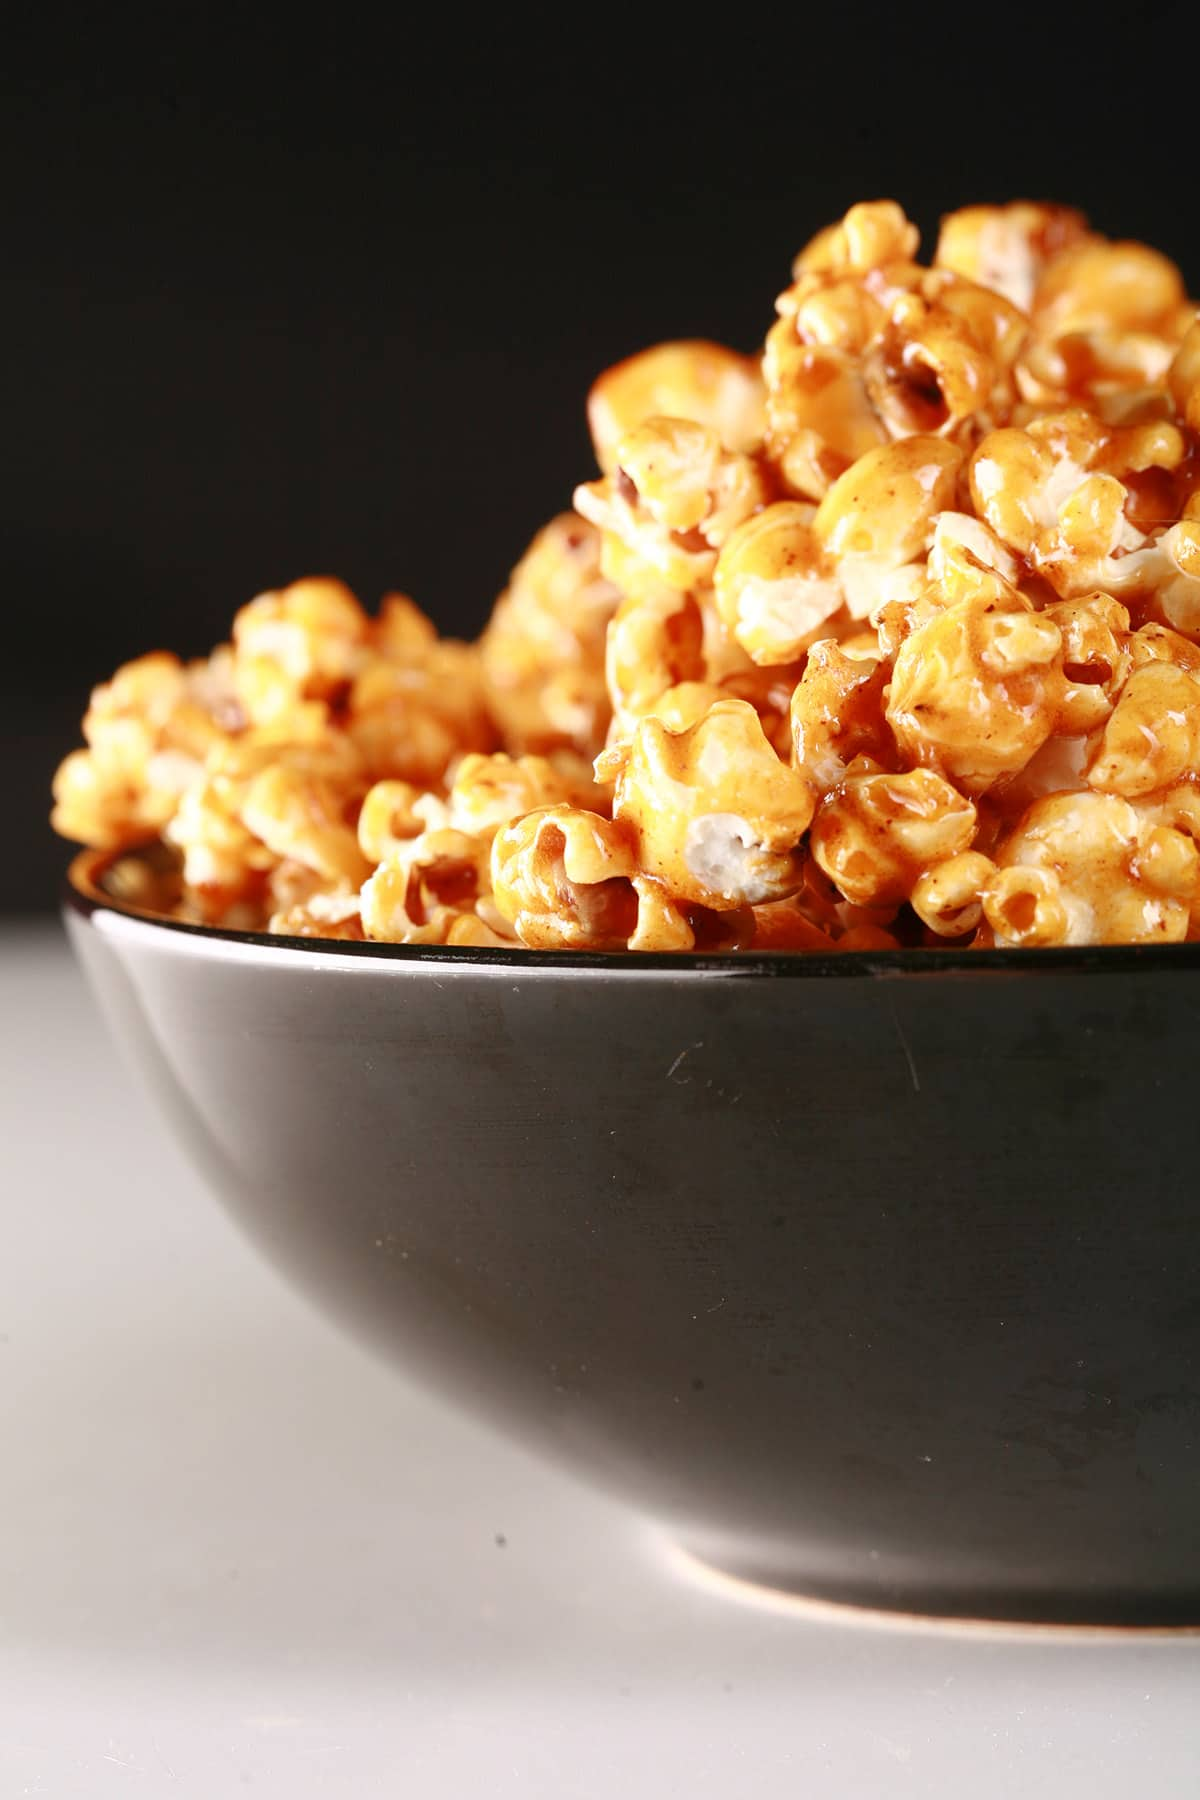 Close up view of a bowl of sweet heat salted caramel popcorn.